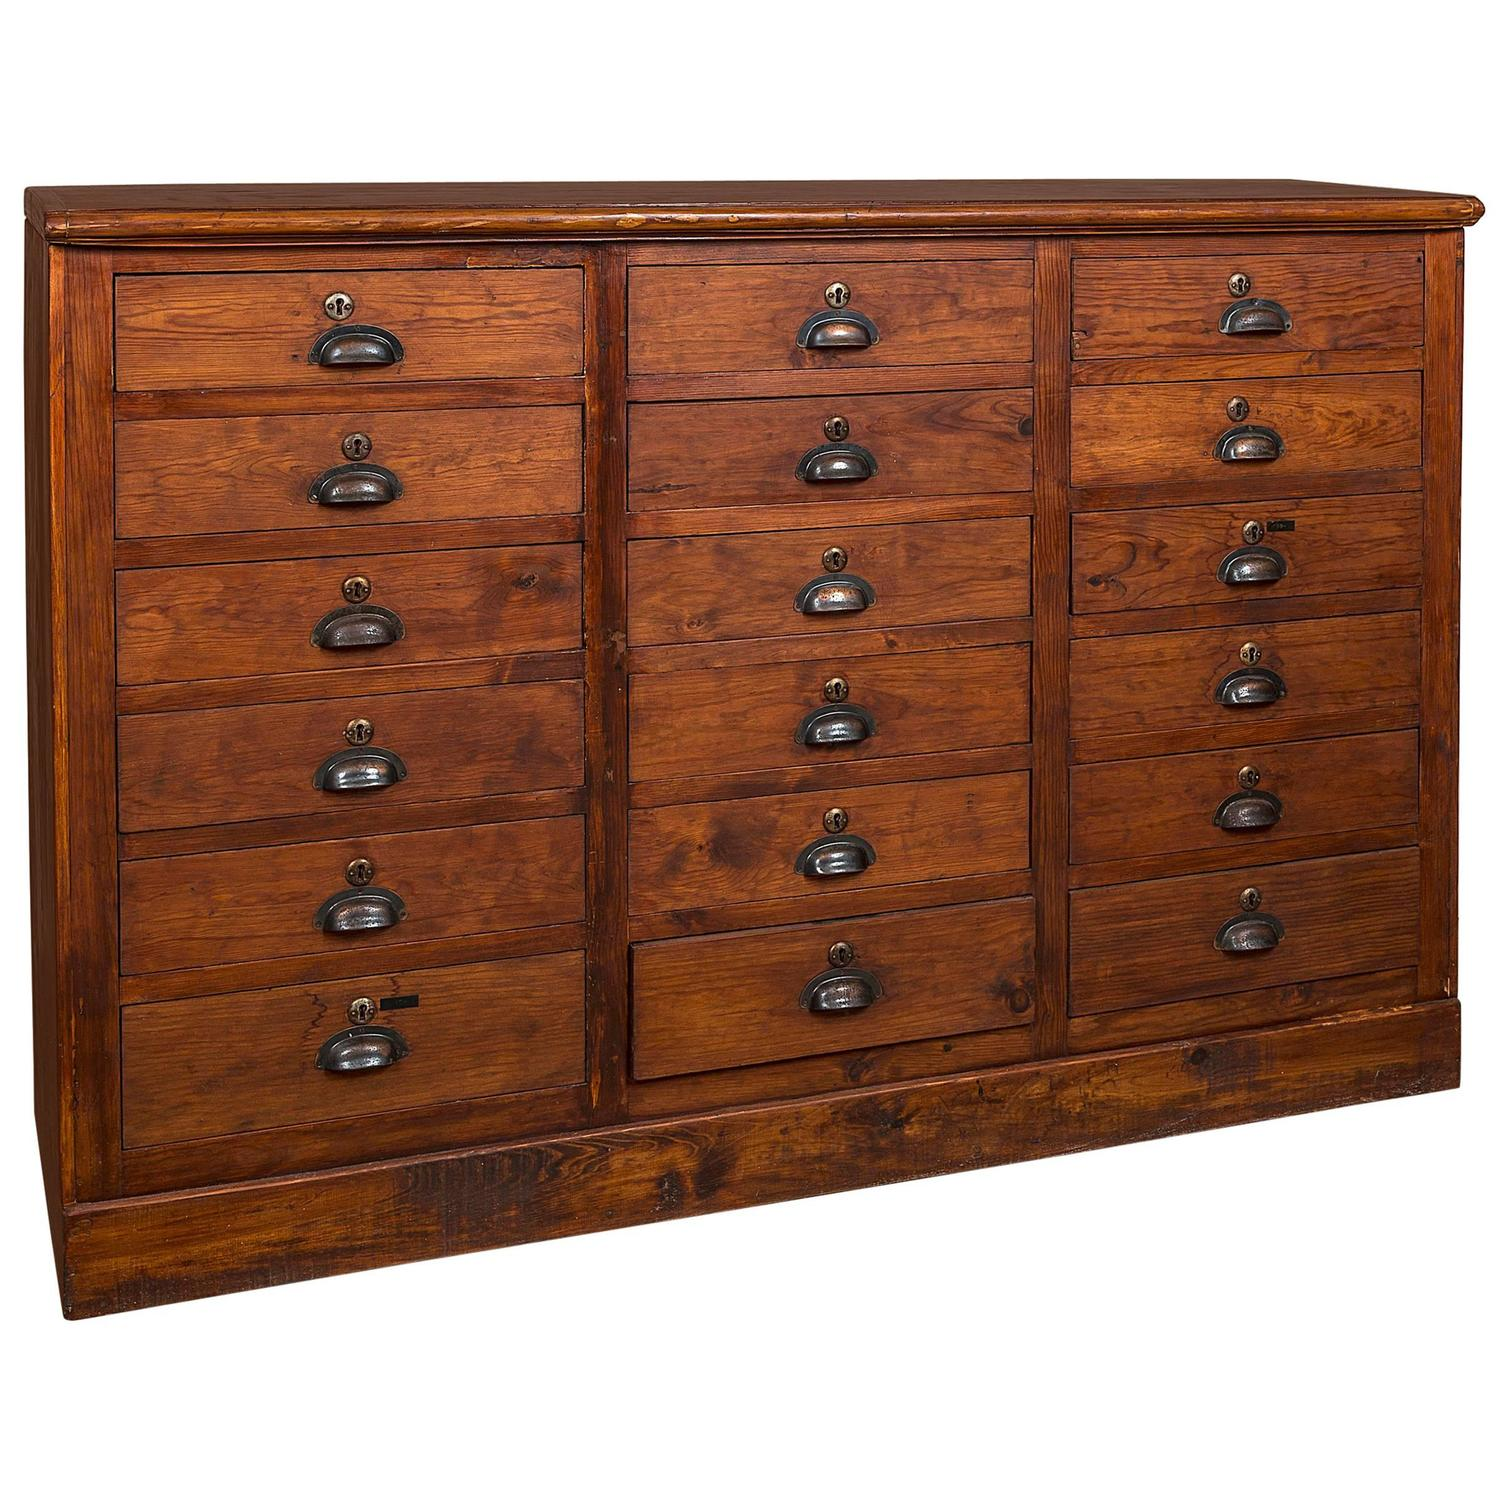 Early 20th Century Apothecary Cabinet At 1stdibs